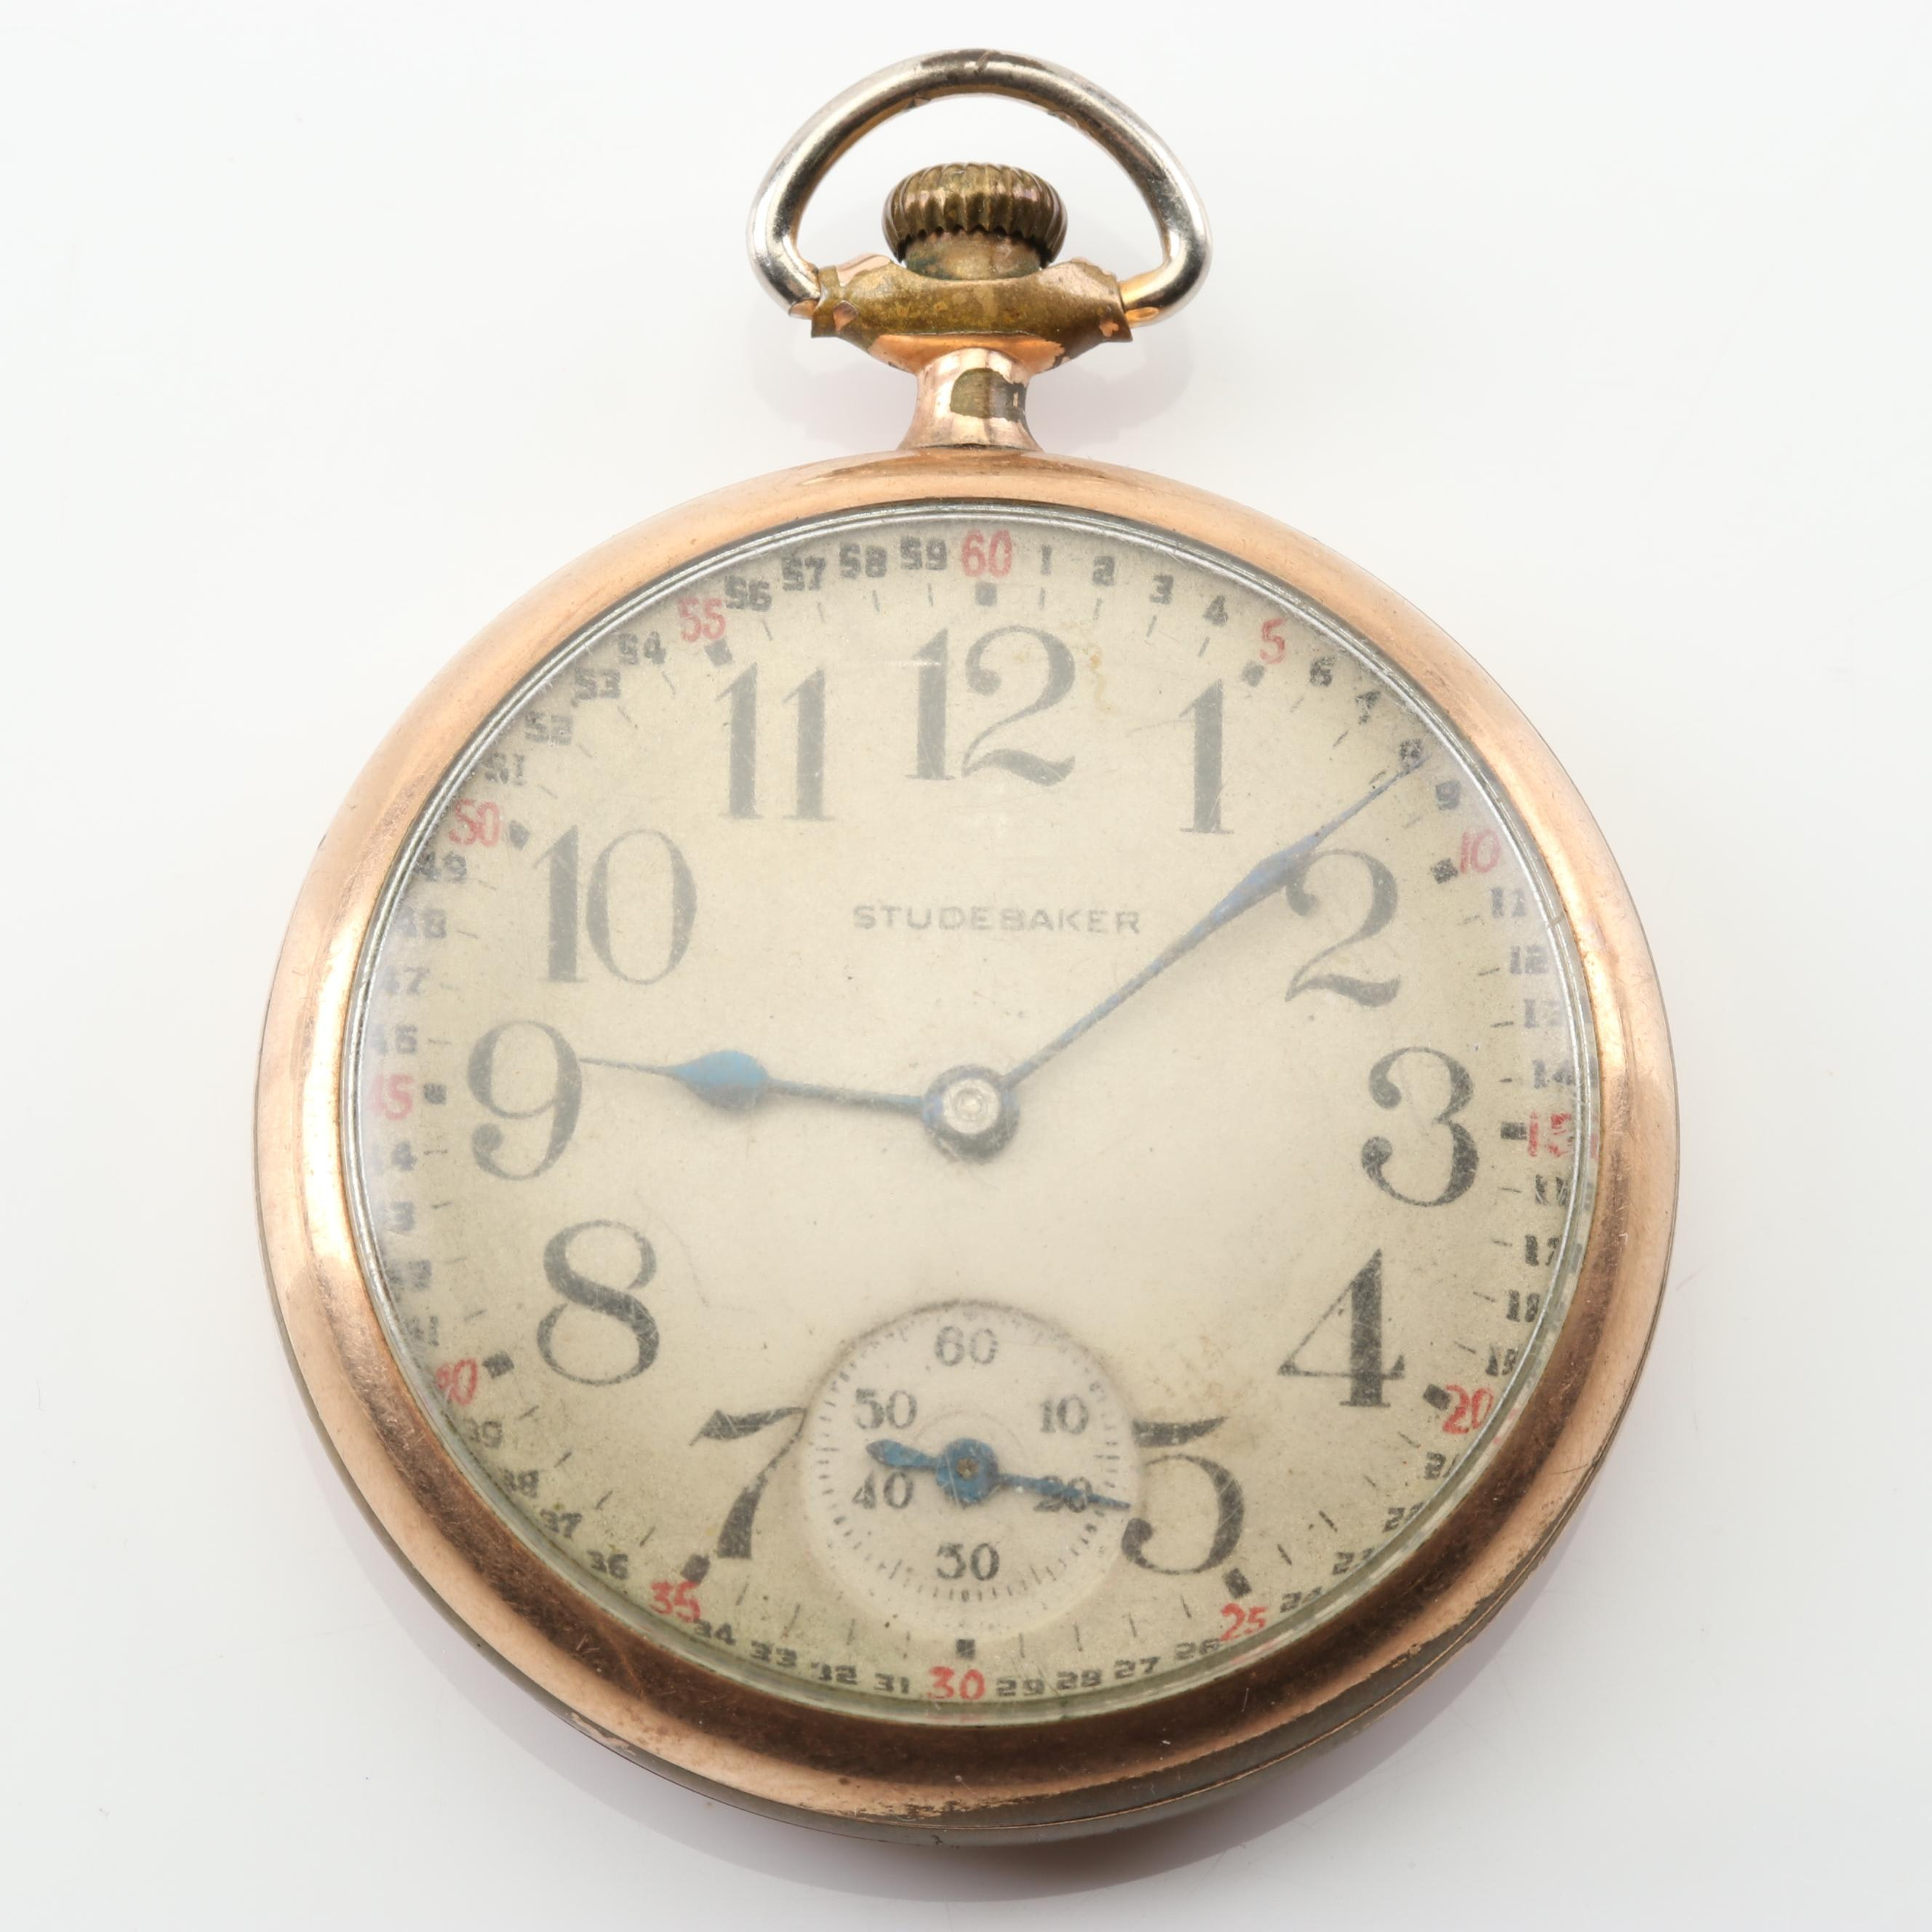 Studebaker Gold Tone Open Face Pocket Watch